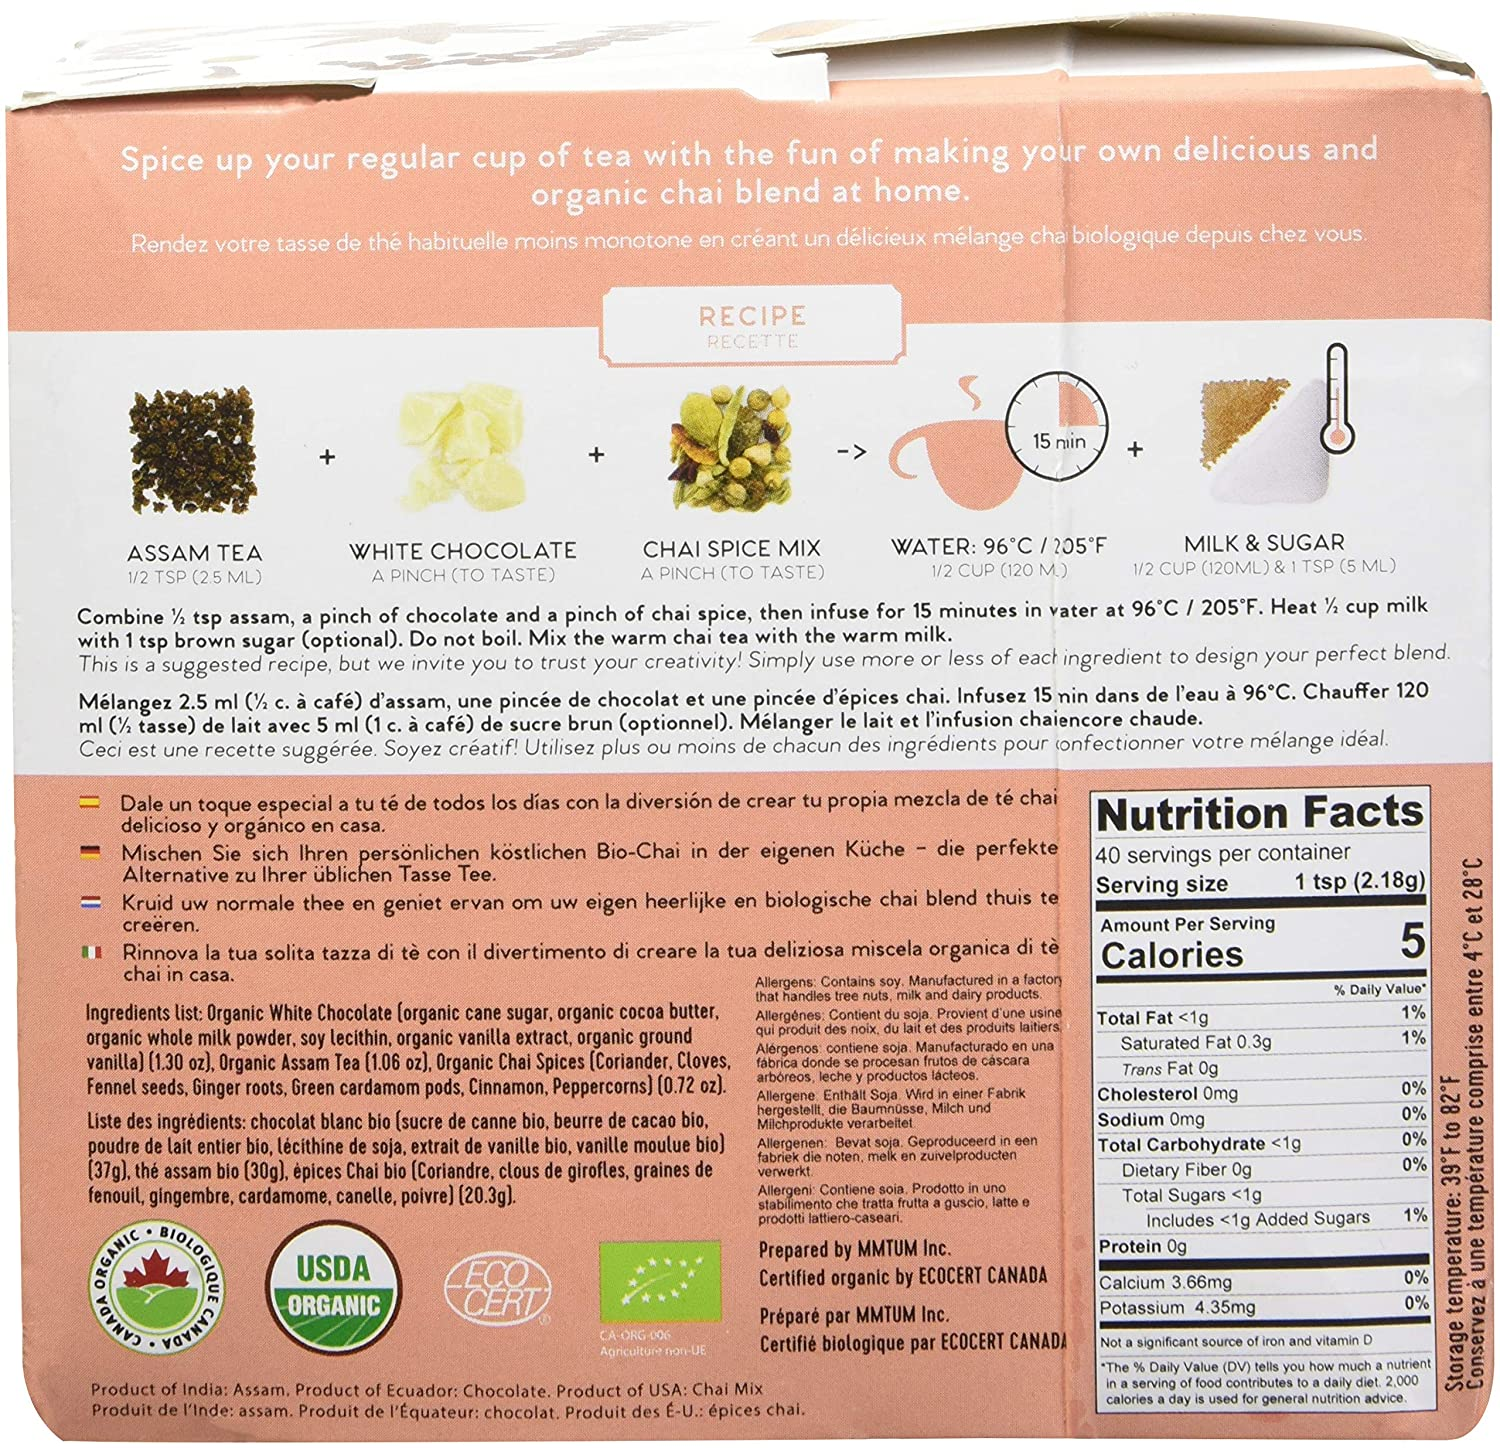 Amazon.com: Chai Latte Tea Blending Kit - Tea it Yourself: Kitchen & Dining